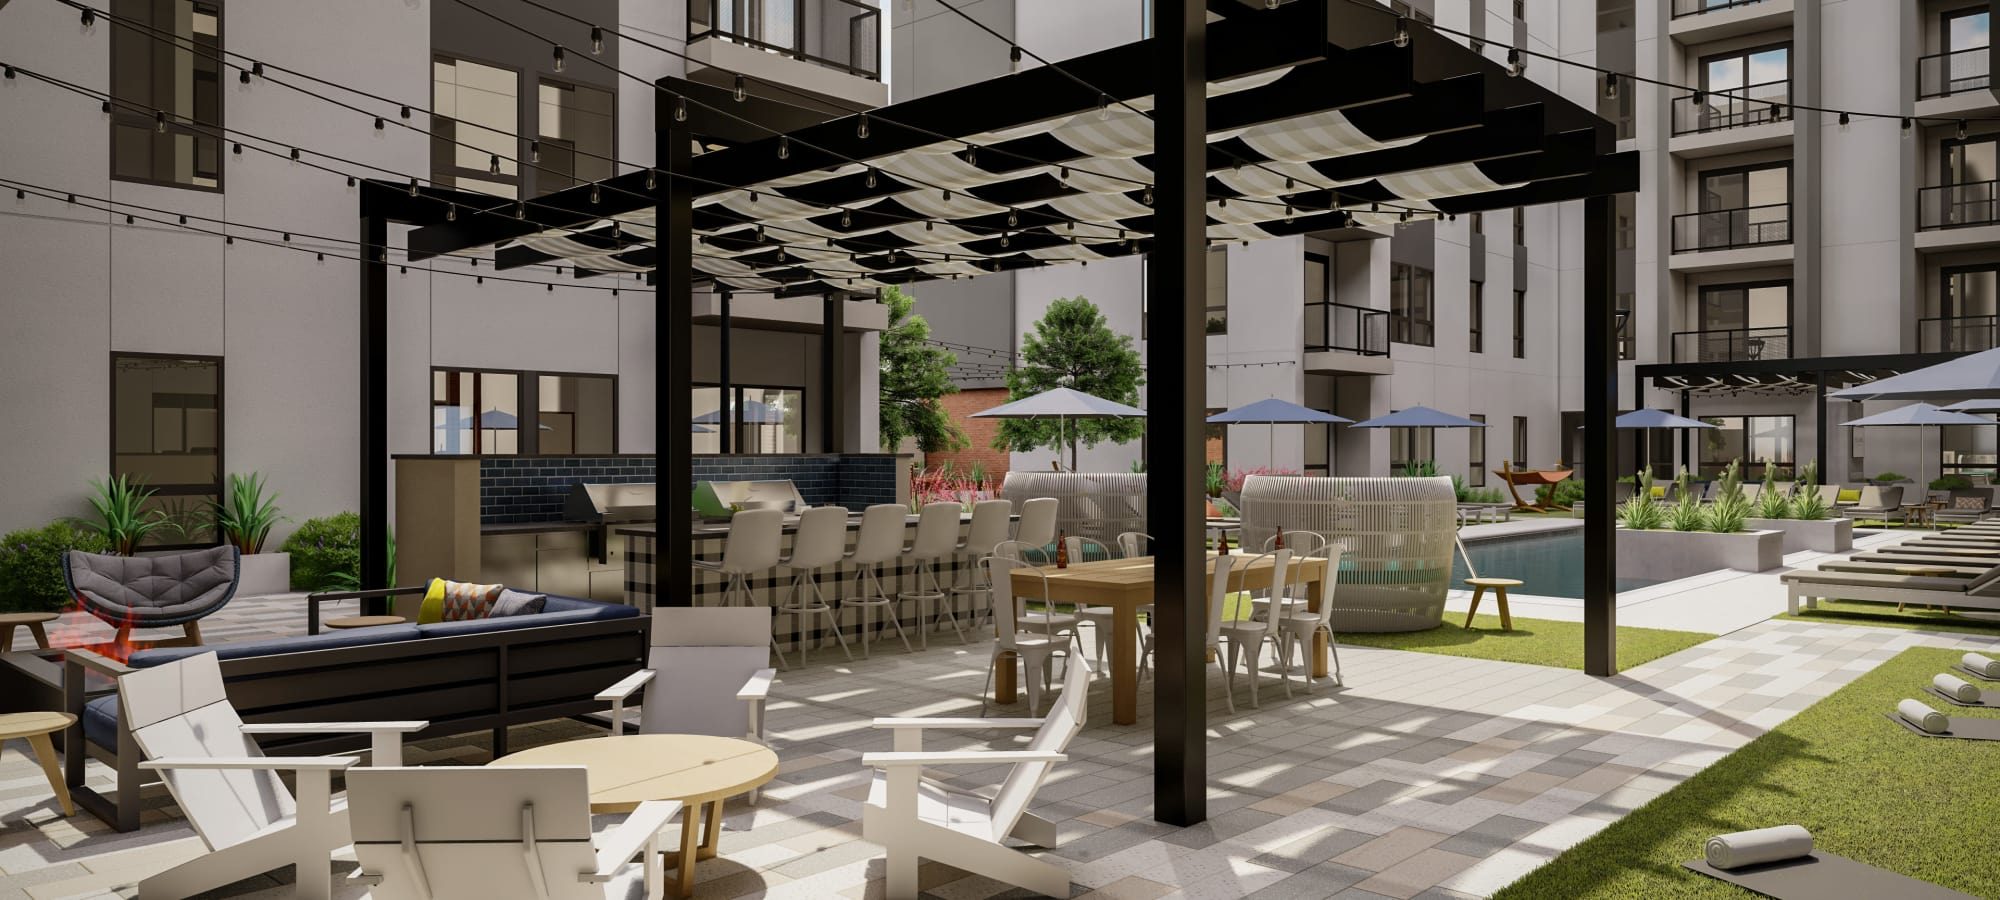 Extensive outdoor grill station with bar seating at The Astor at Osborn in Phoenix, Arizona